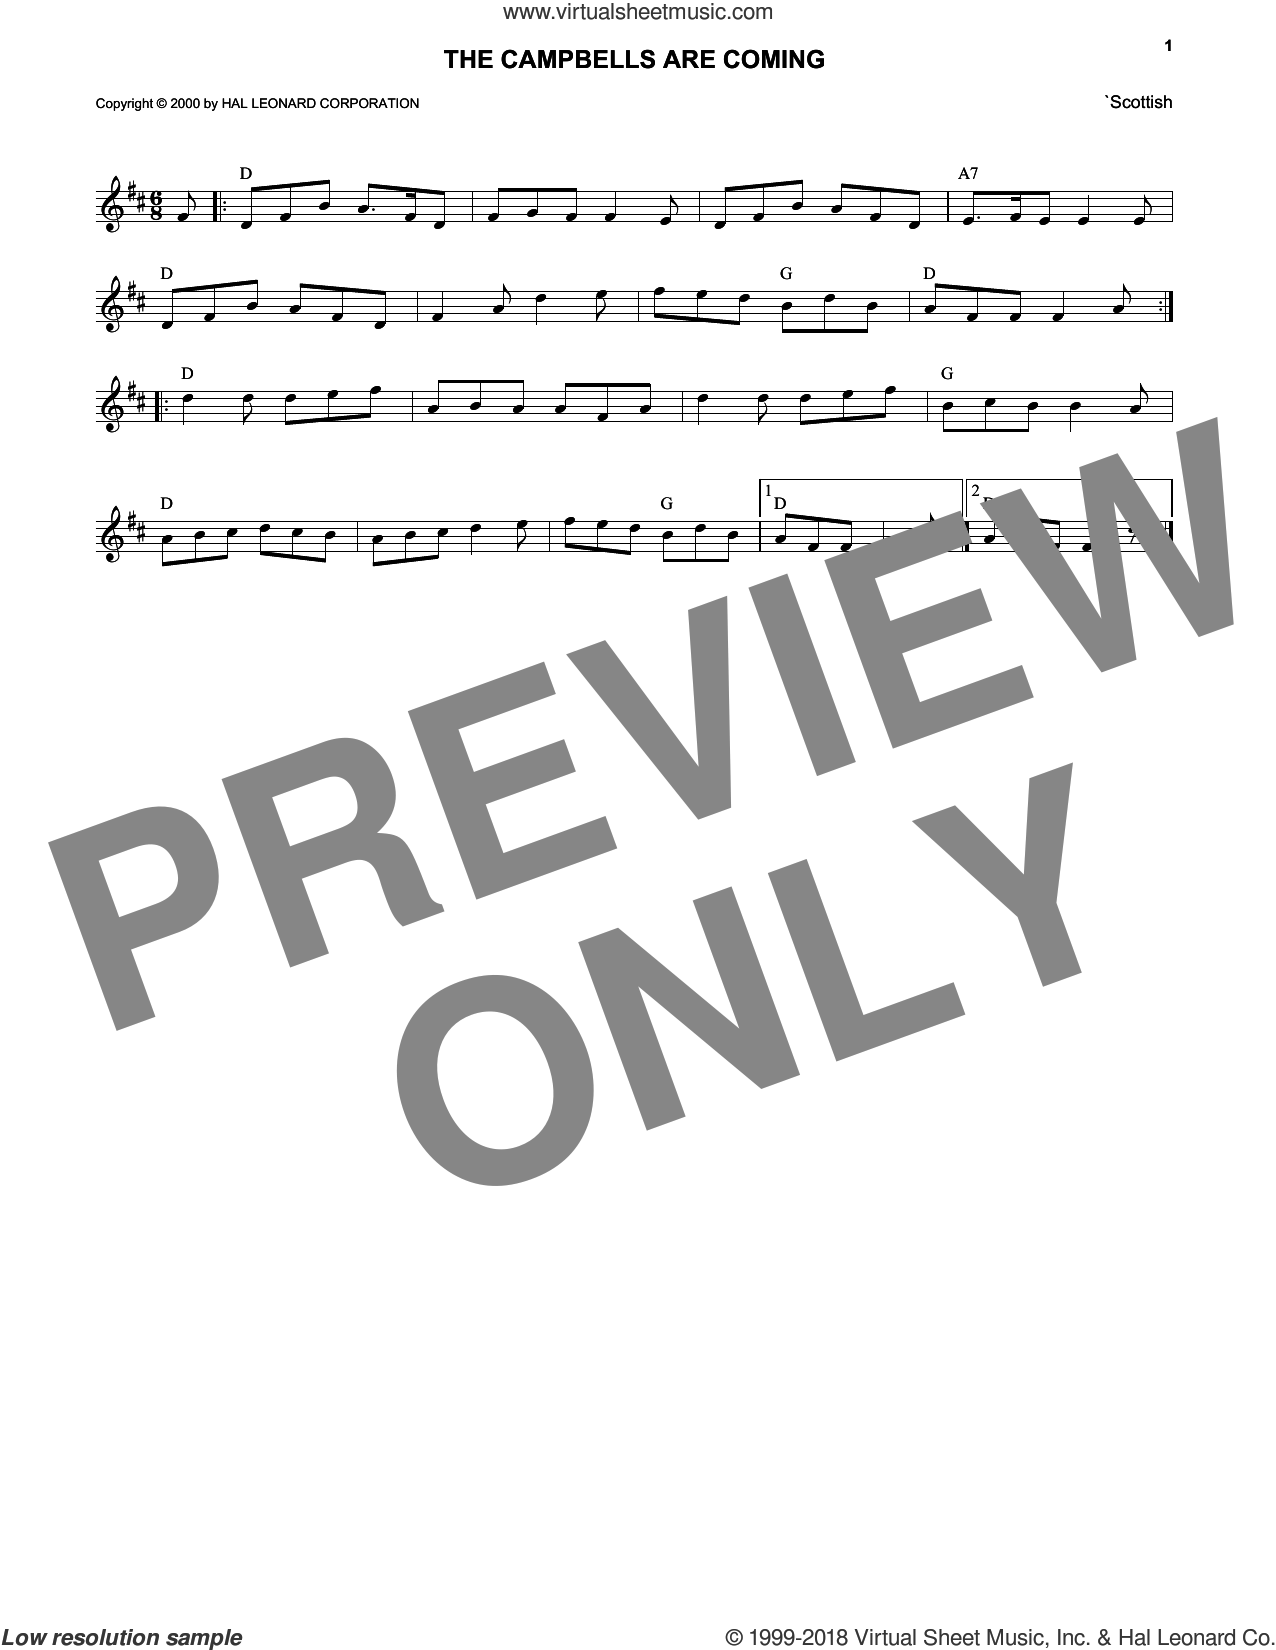 The Campbells Are Coming sheet music for voice and other instruments (fake book), intermediate